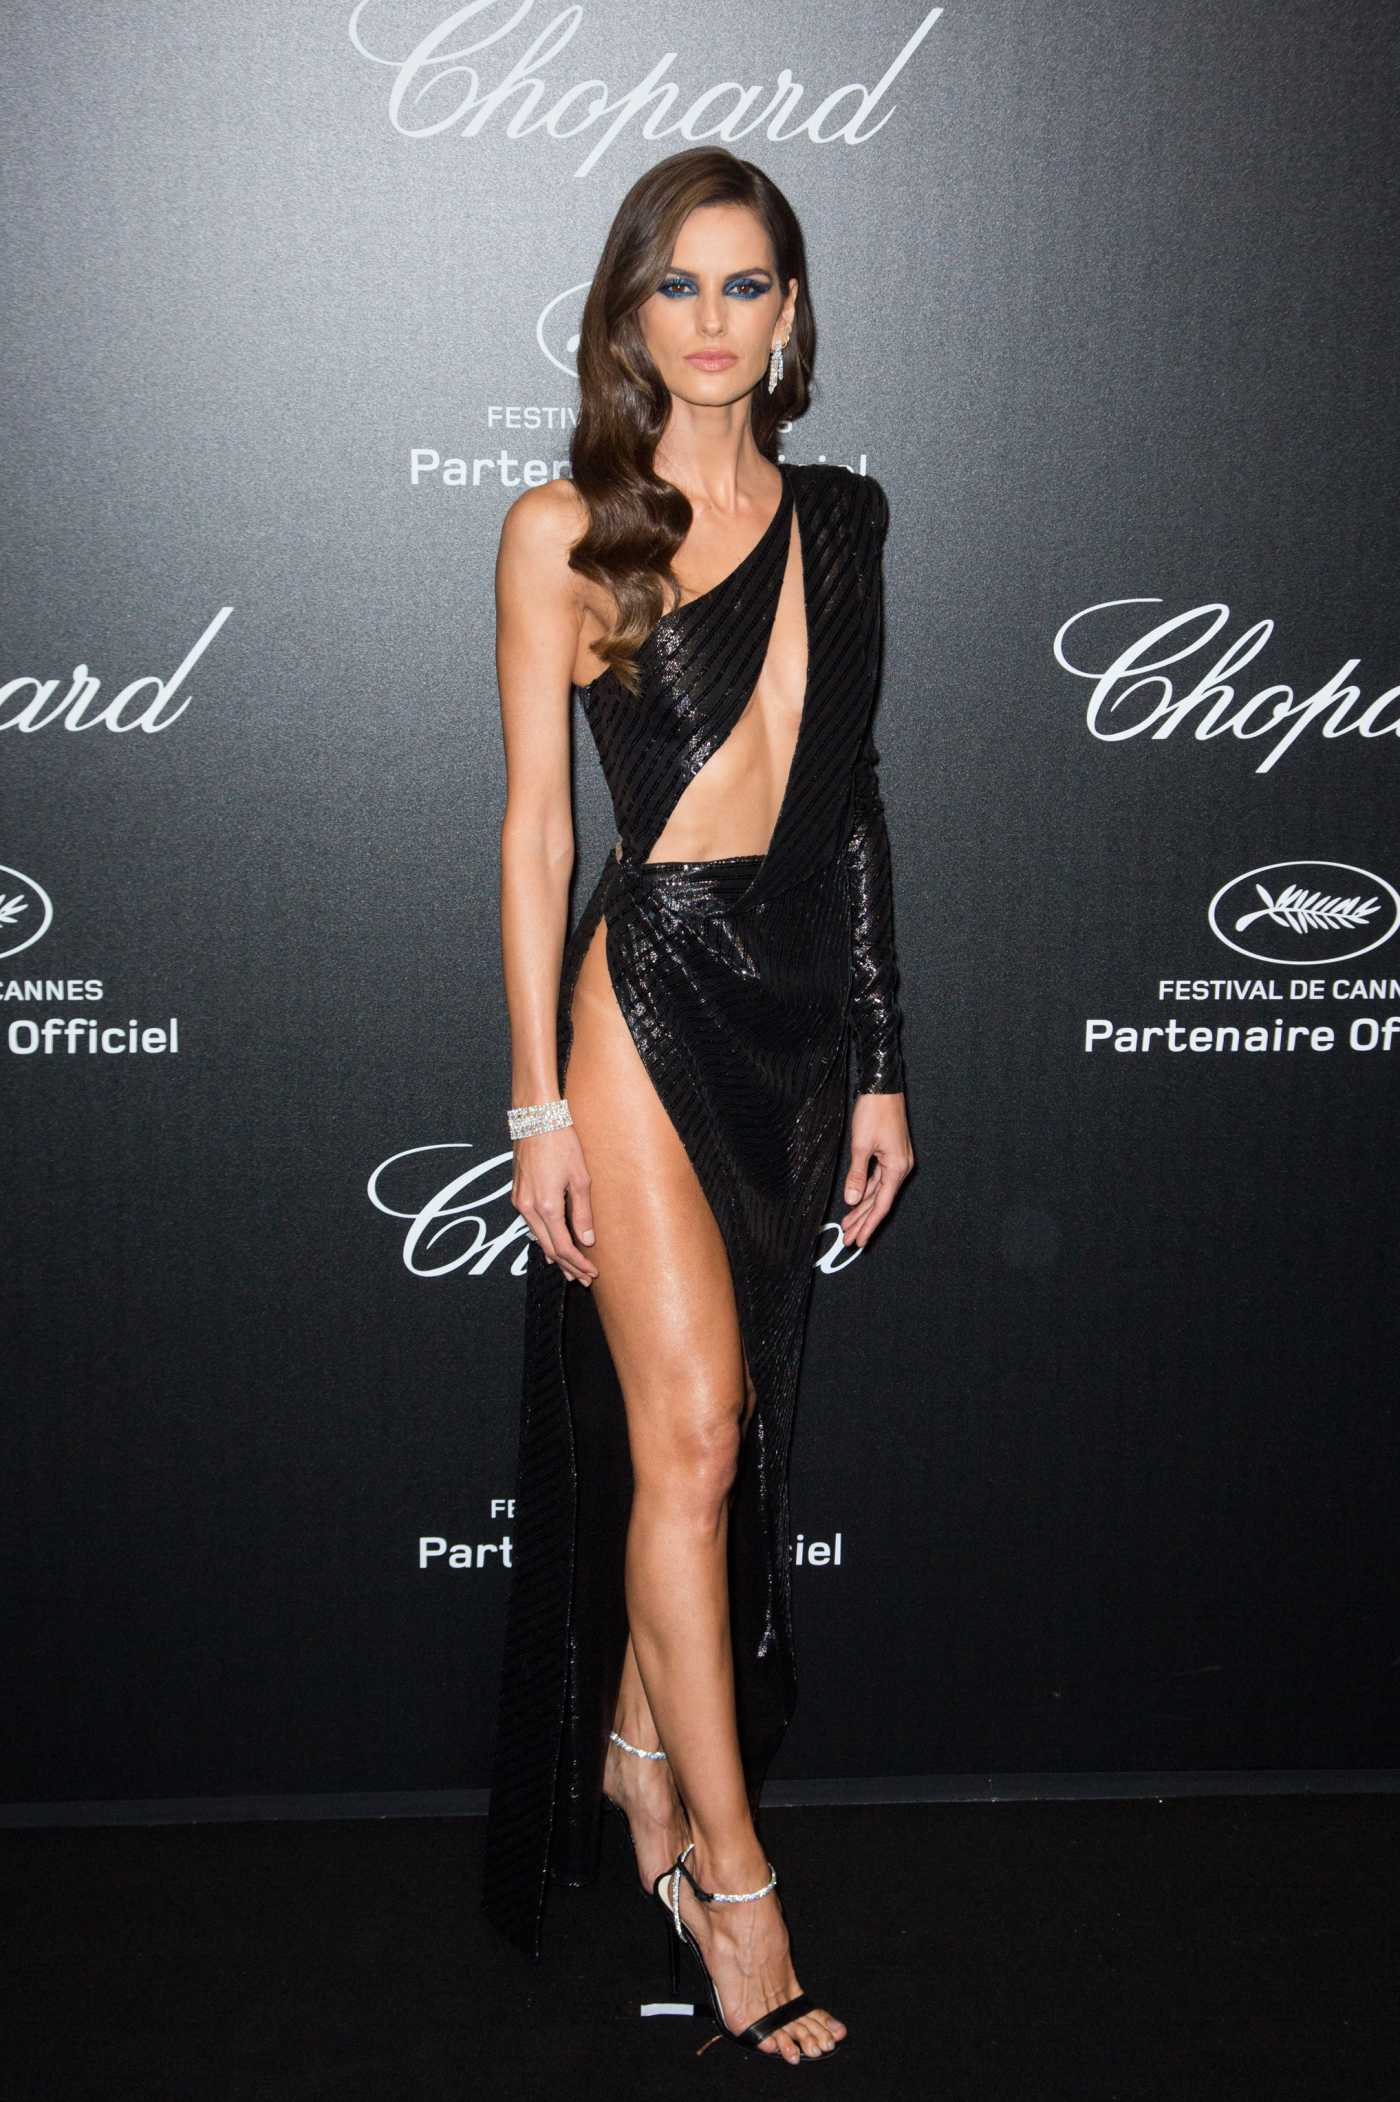 Izabel Goulart Attends Chopard Love Night Photocall During the 72nd Cannes Film Festival in Cannes 05/17/2019